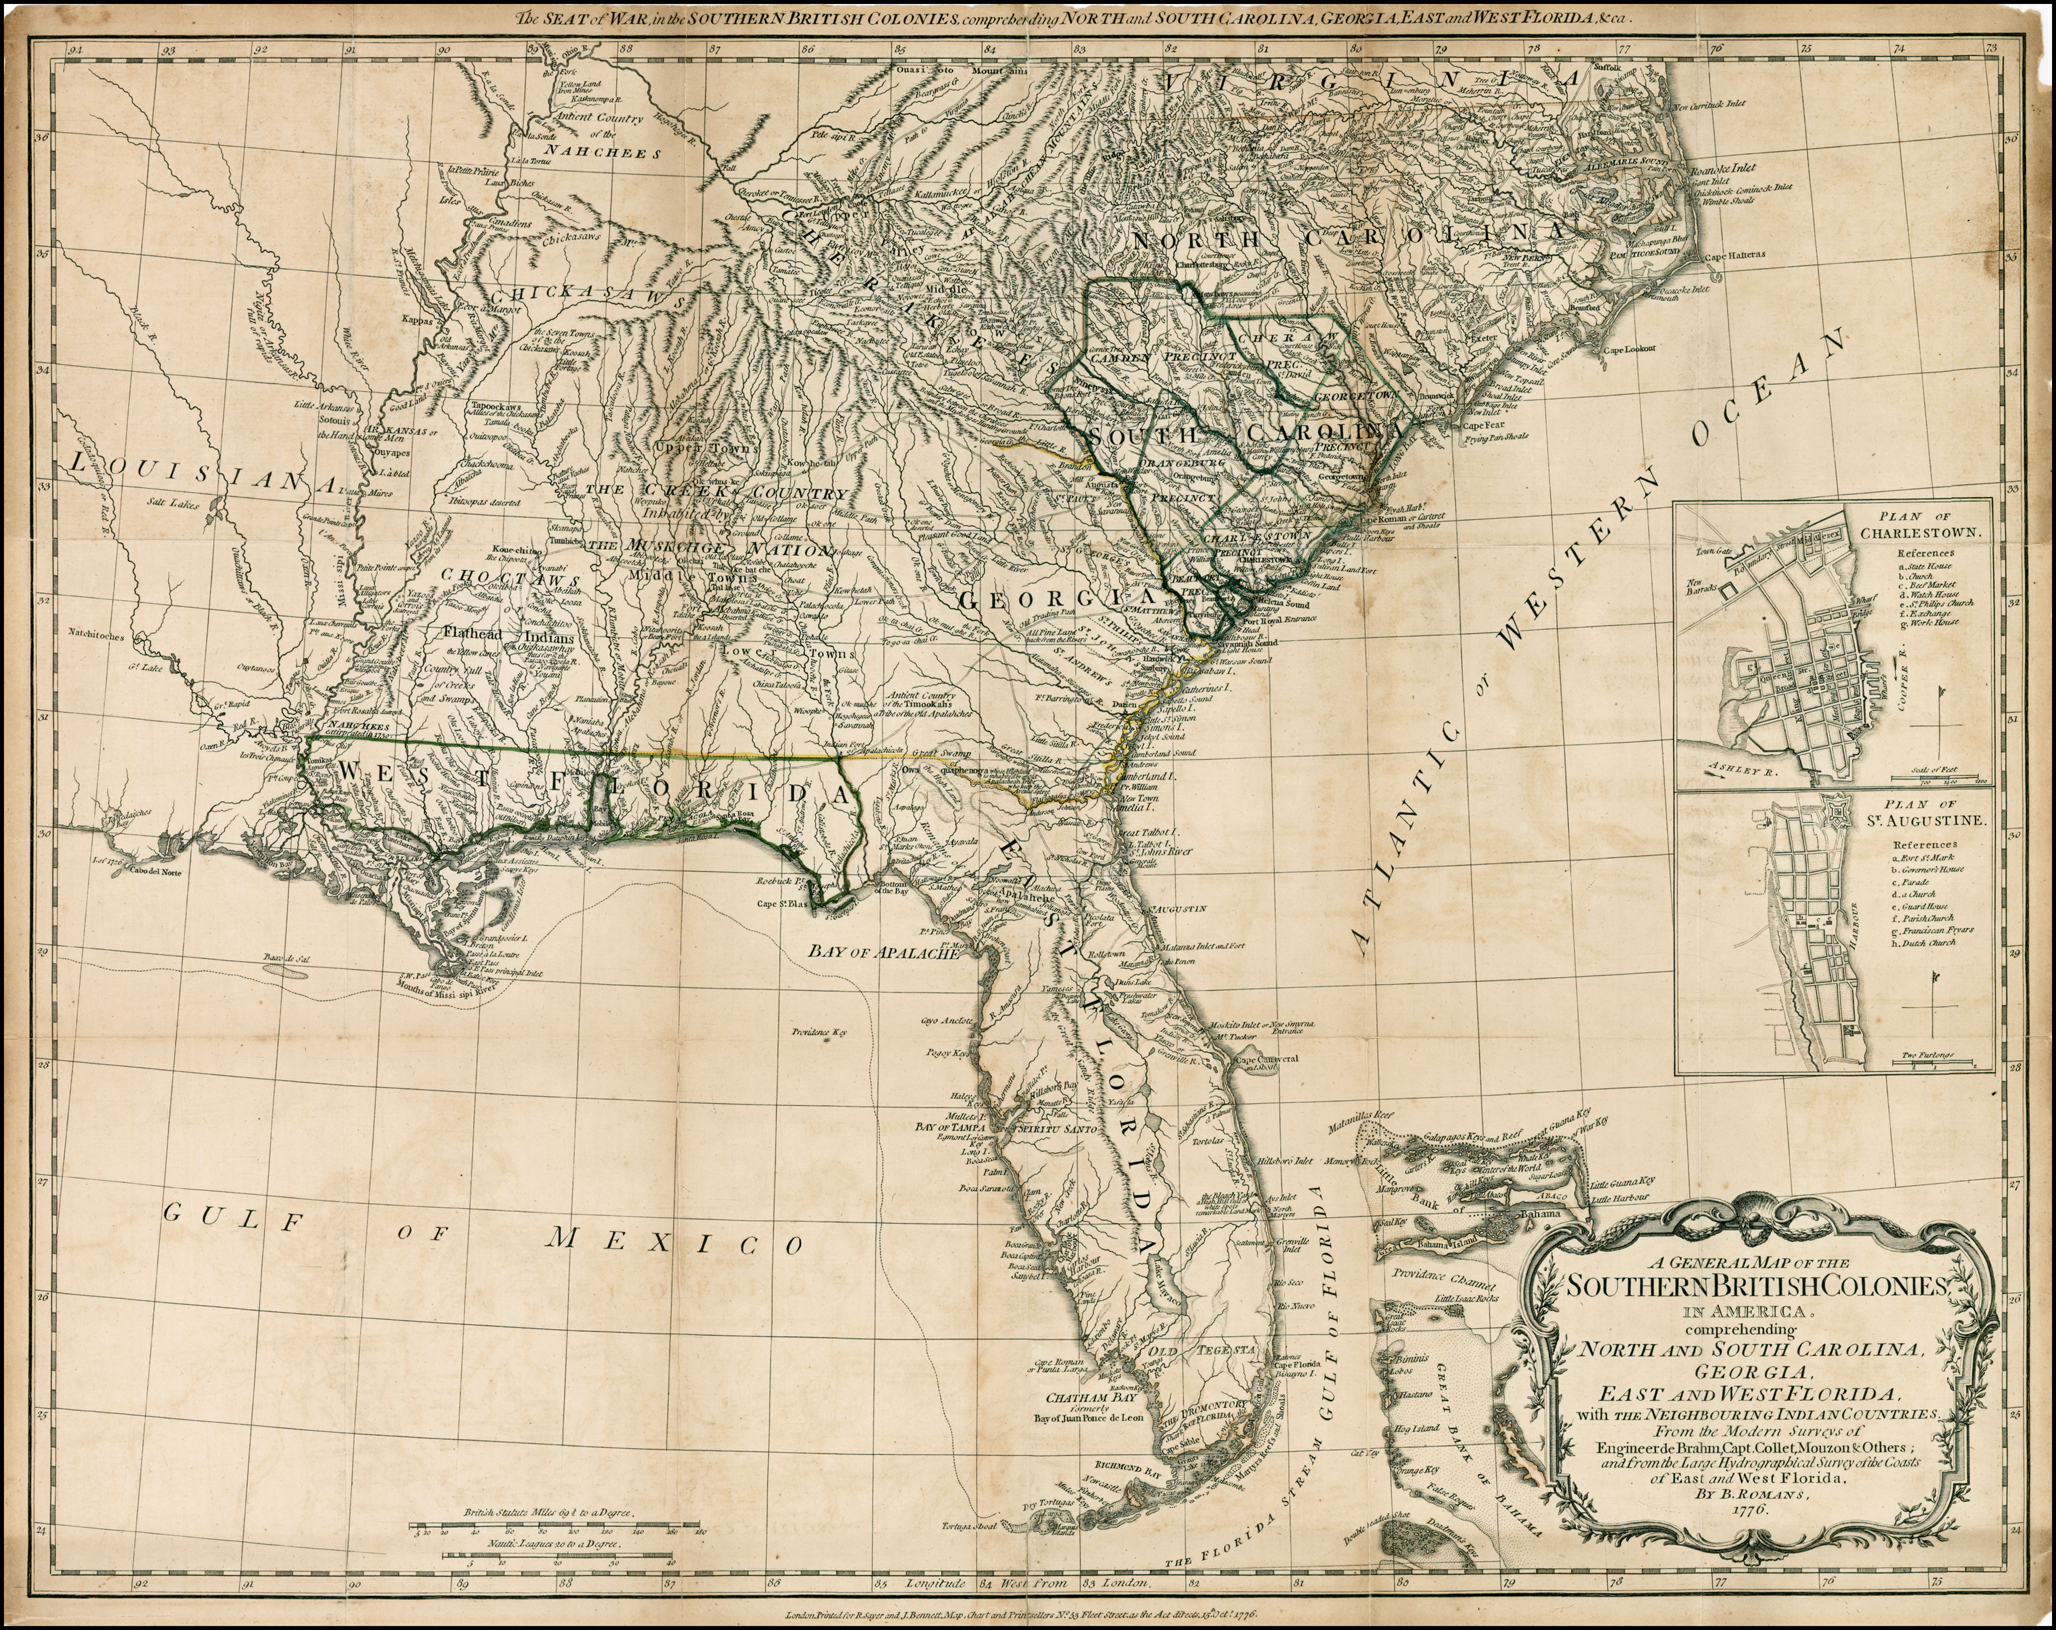 Map Of East Georgia.A General Map Of The Southern British Colonies In America